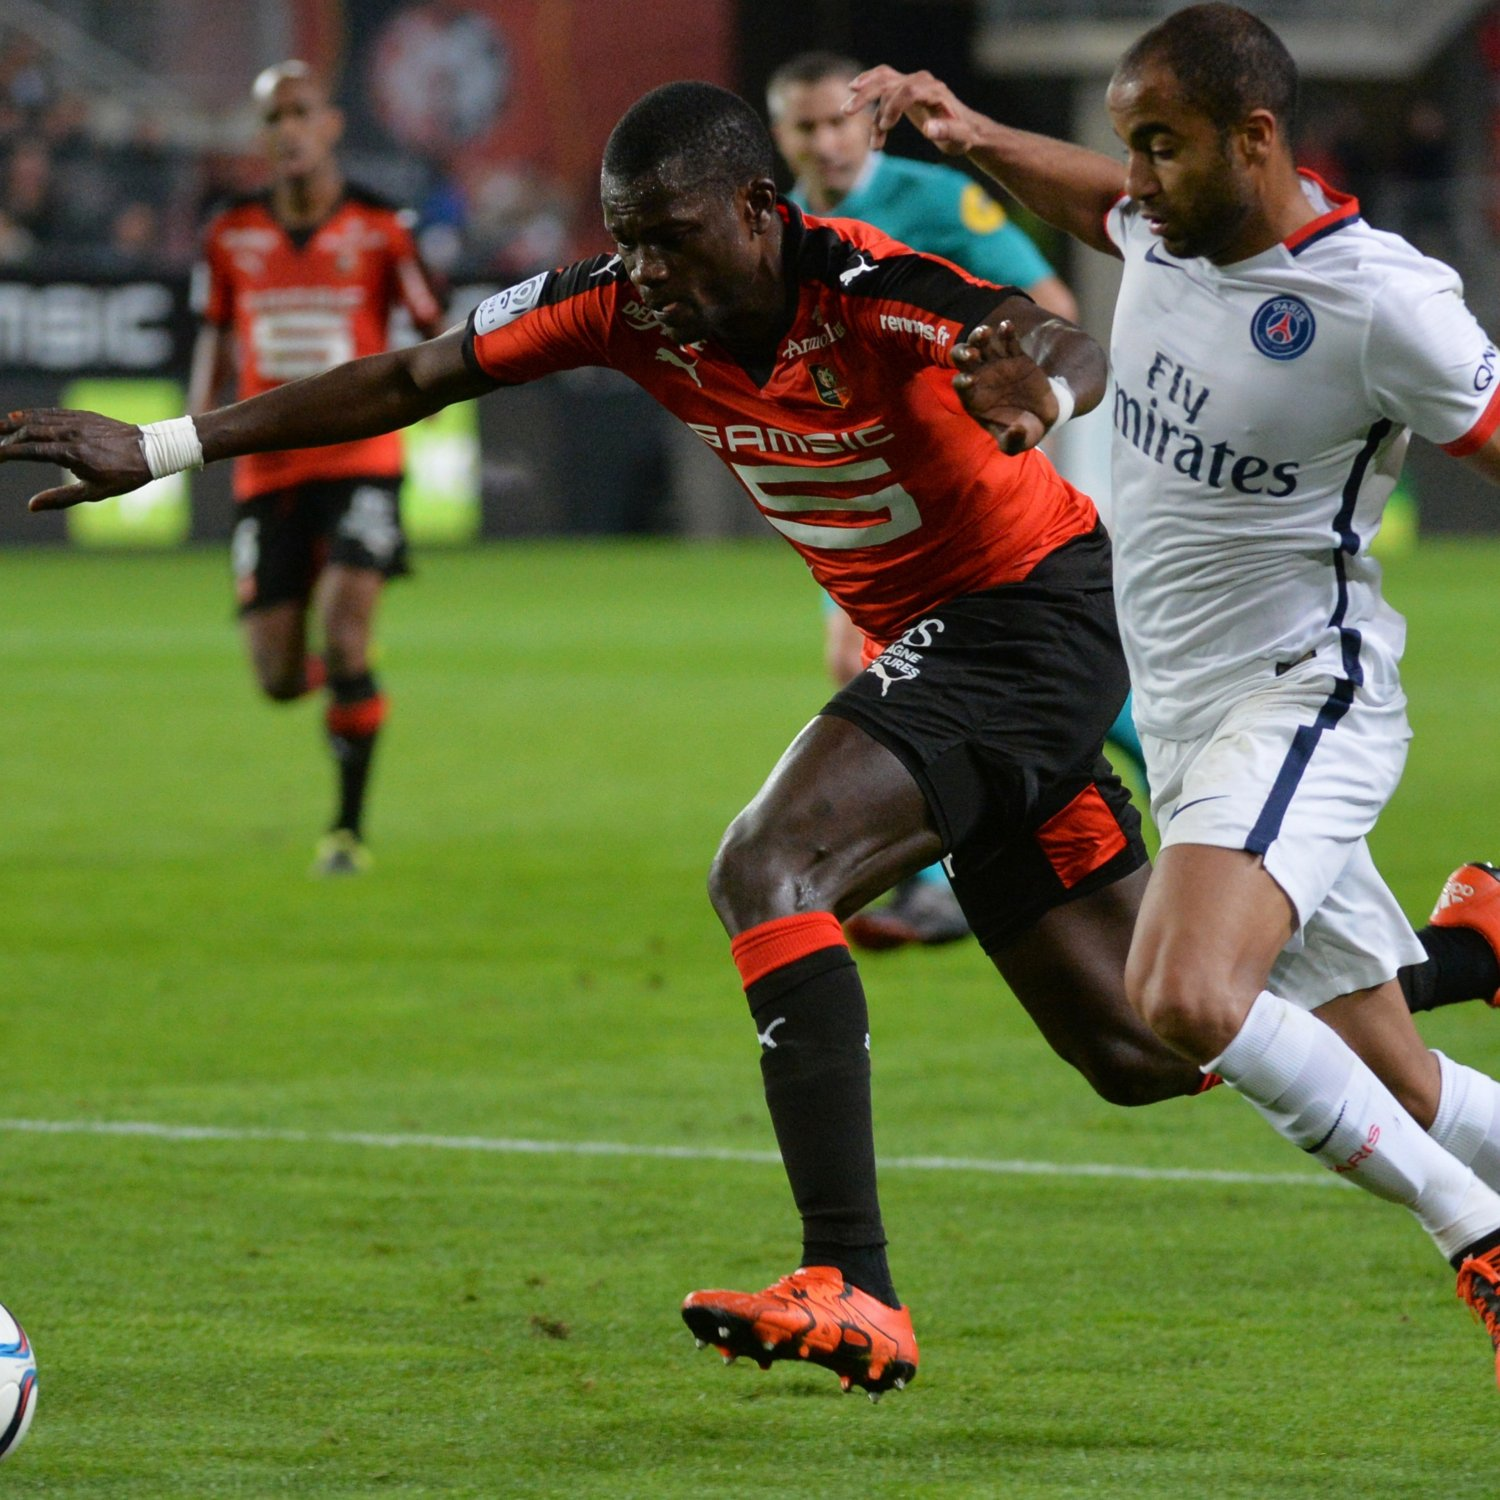 psg vs rennes team news predicted lineups live stream and tv info bleacher report. Black Bedroom Furniture Sets. Home Design Ideas